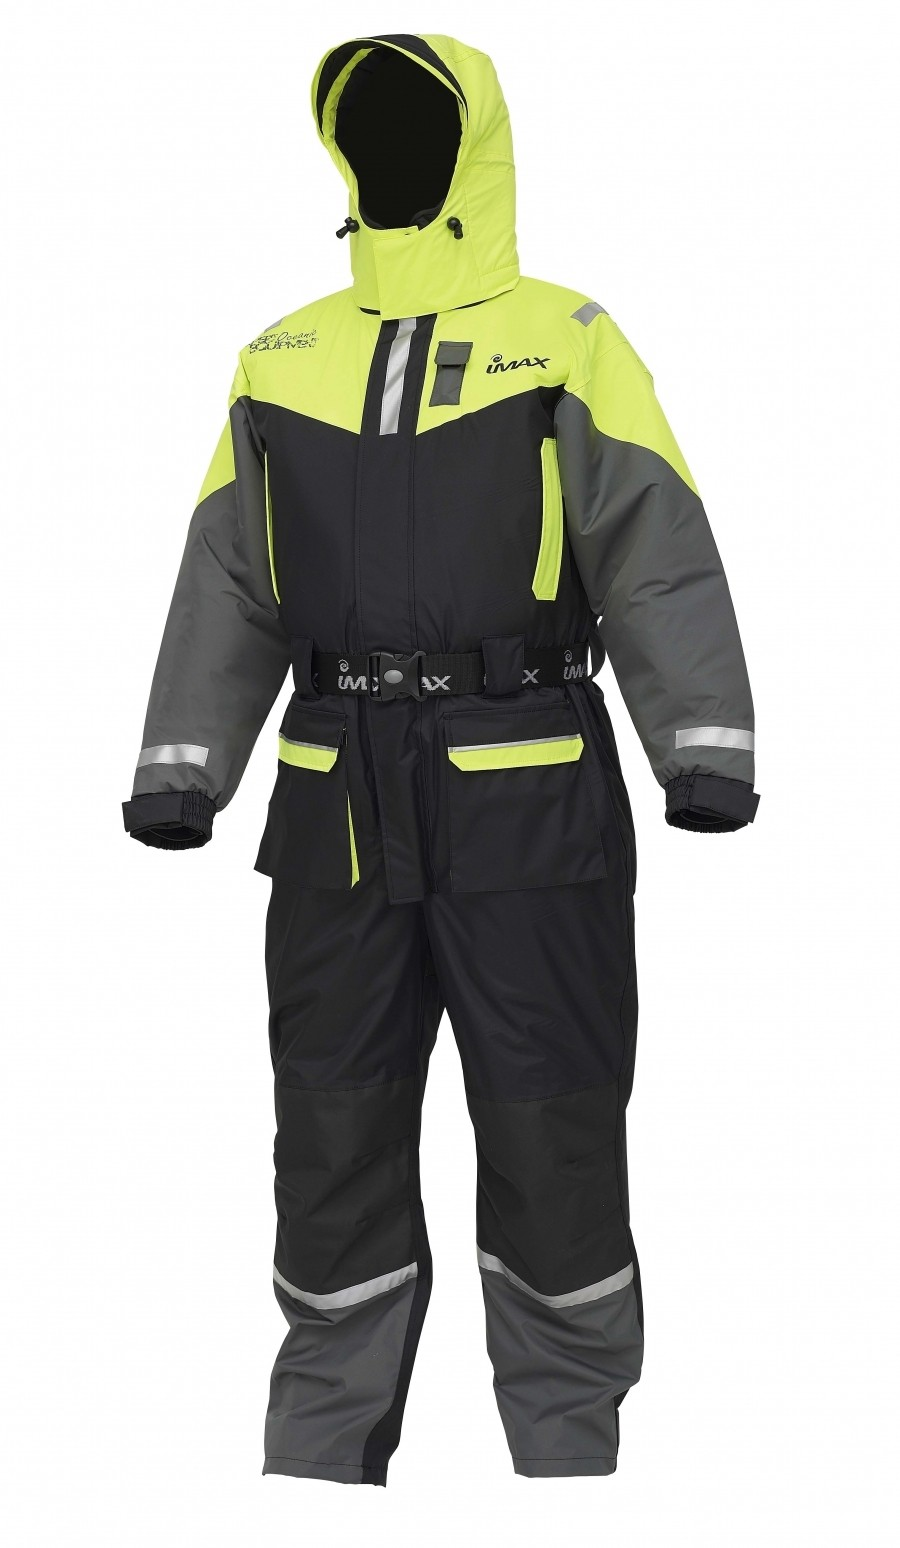 Imax Wave 1 piece Flotation Suit